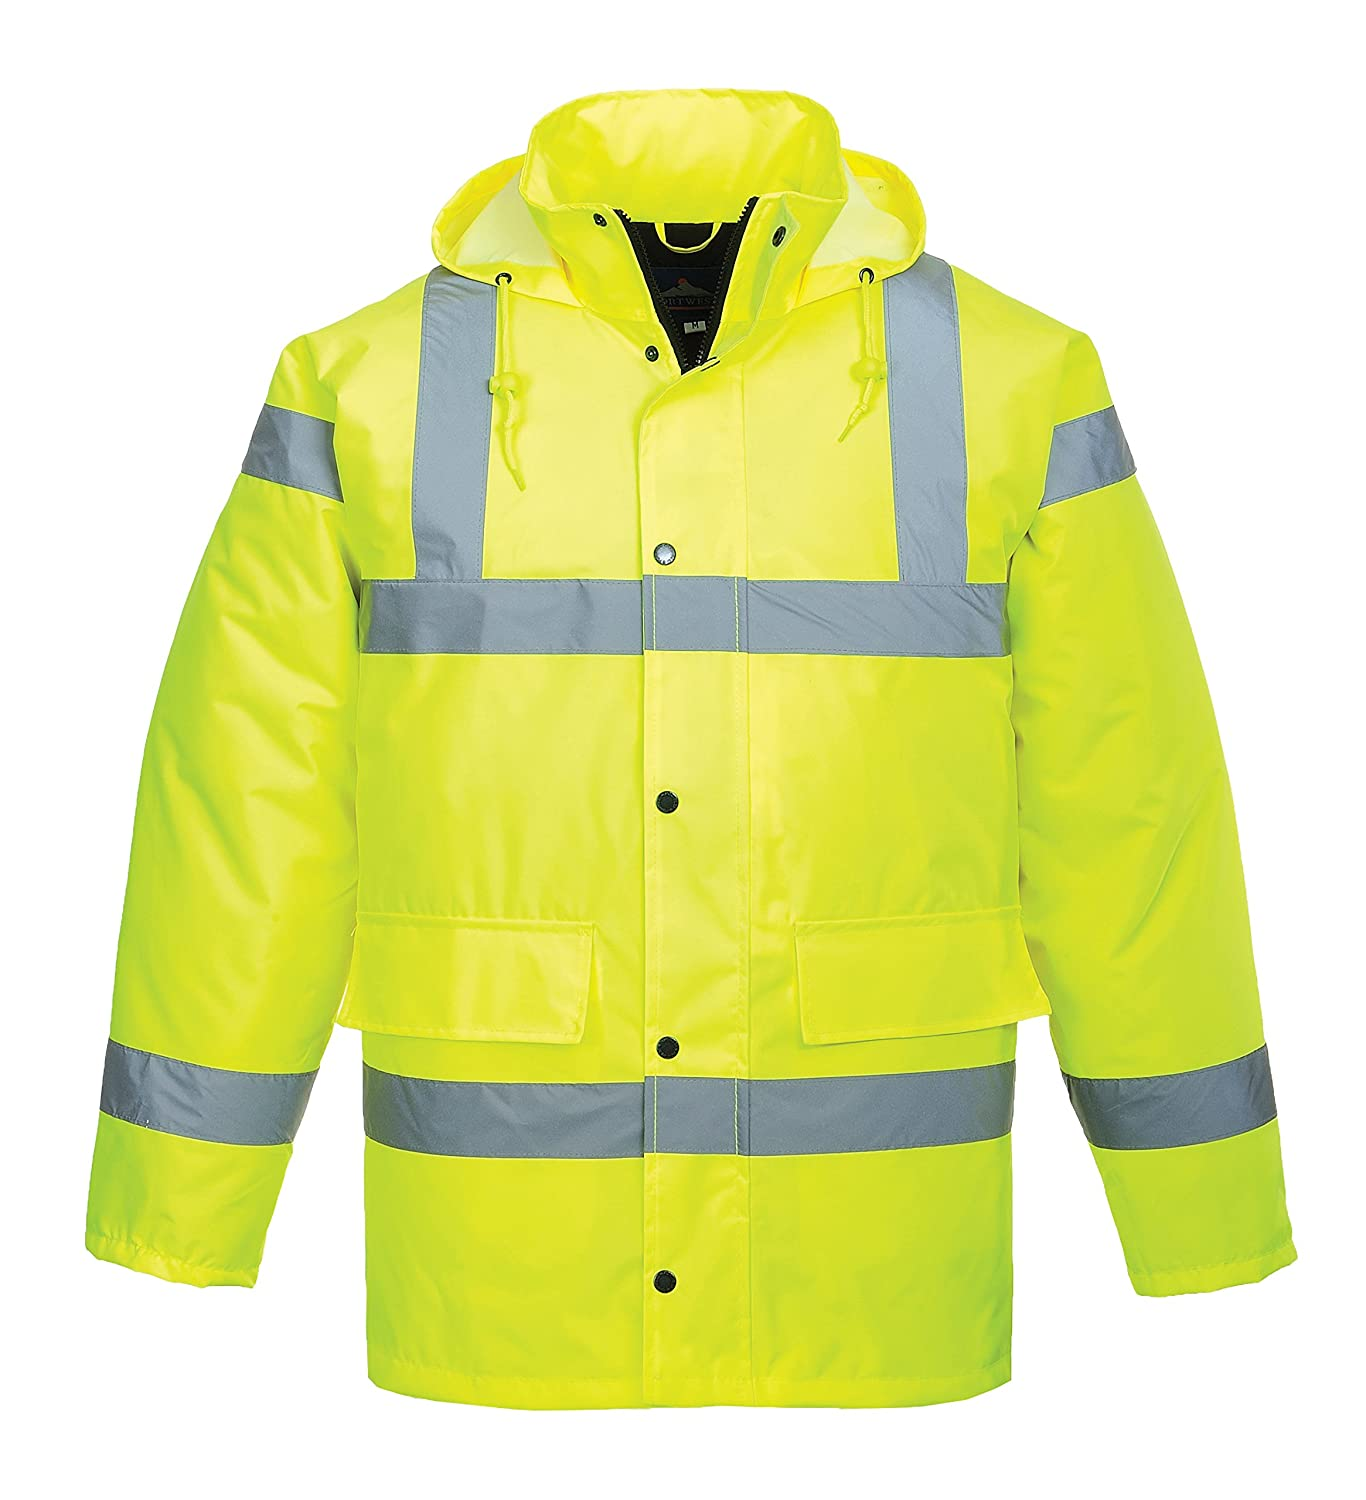 Portwest S460YERXXXL Hi-Vis Traffic Jacket, Regular, Size 3X-Large, Yellow AutoMotion Factors Limited